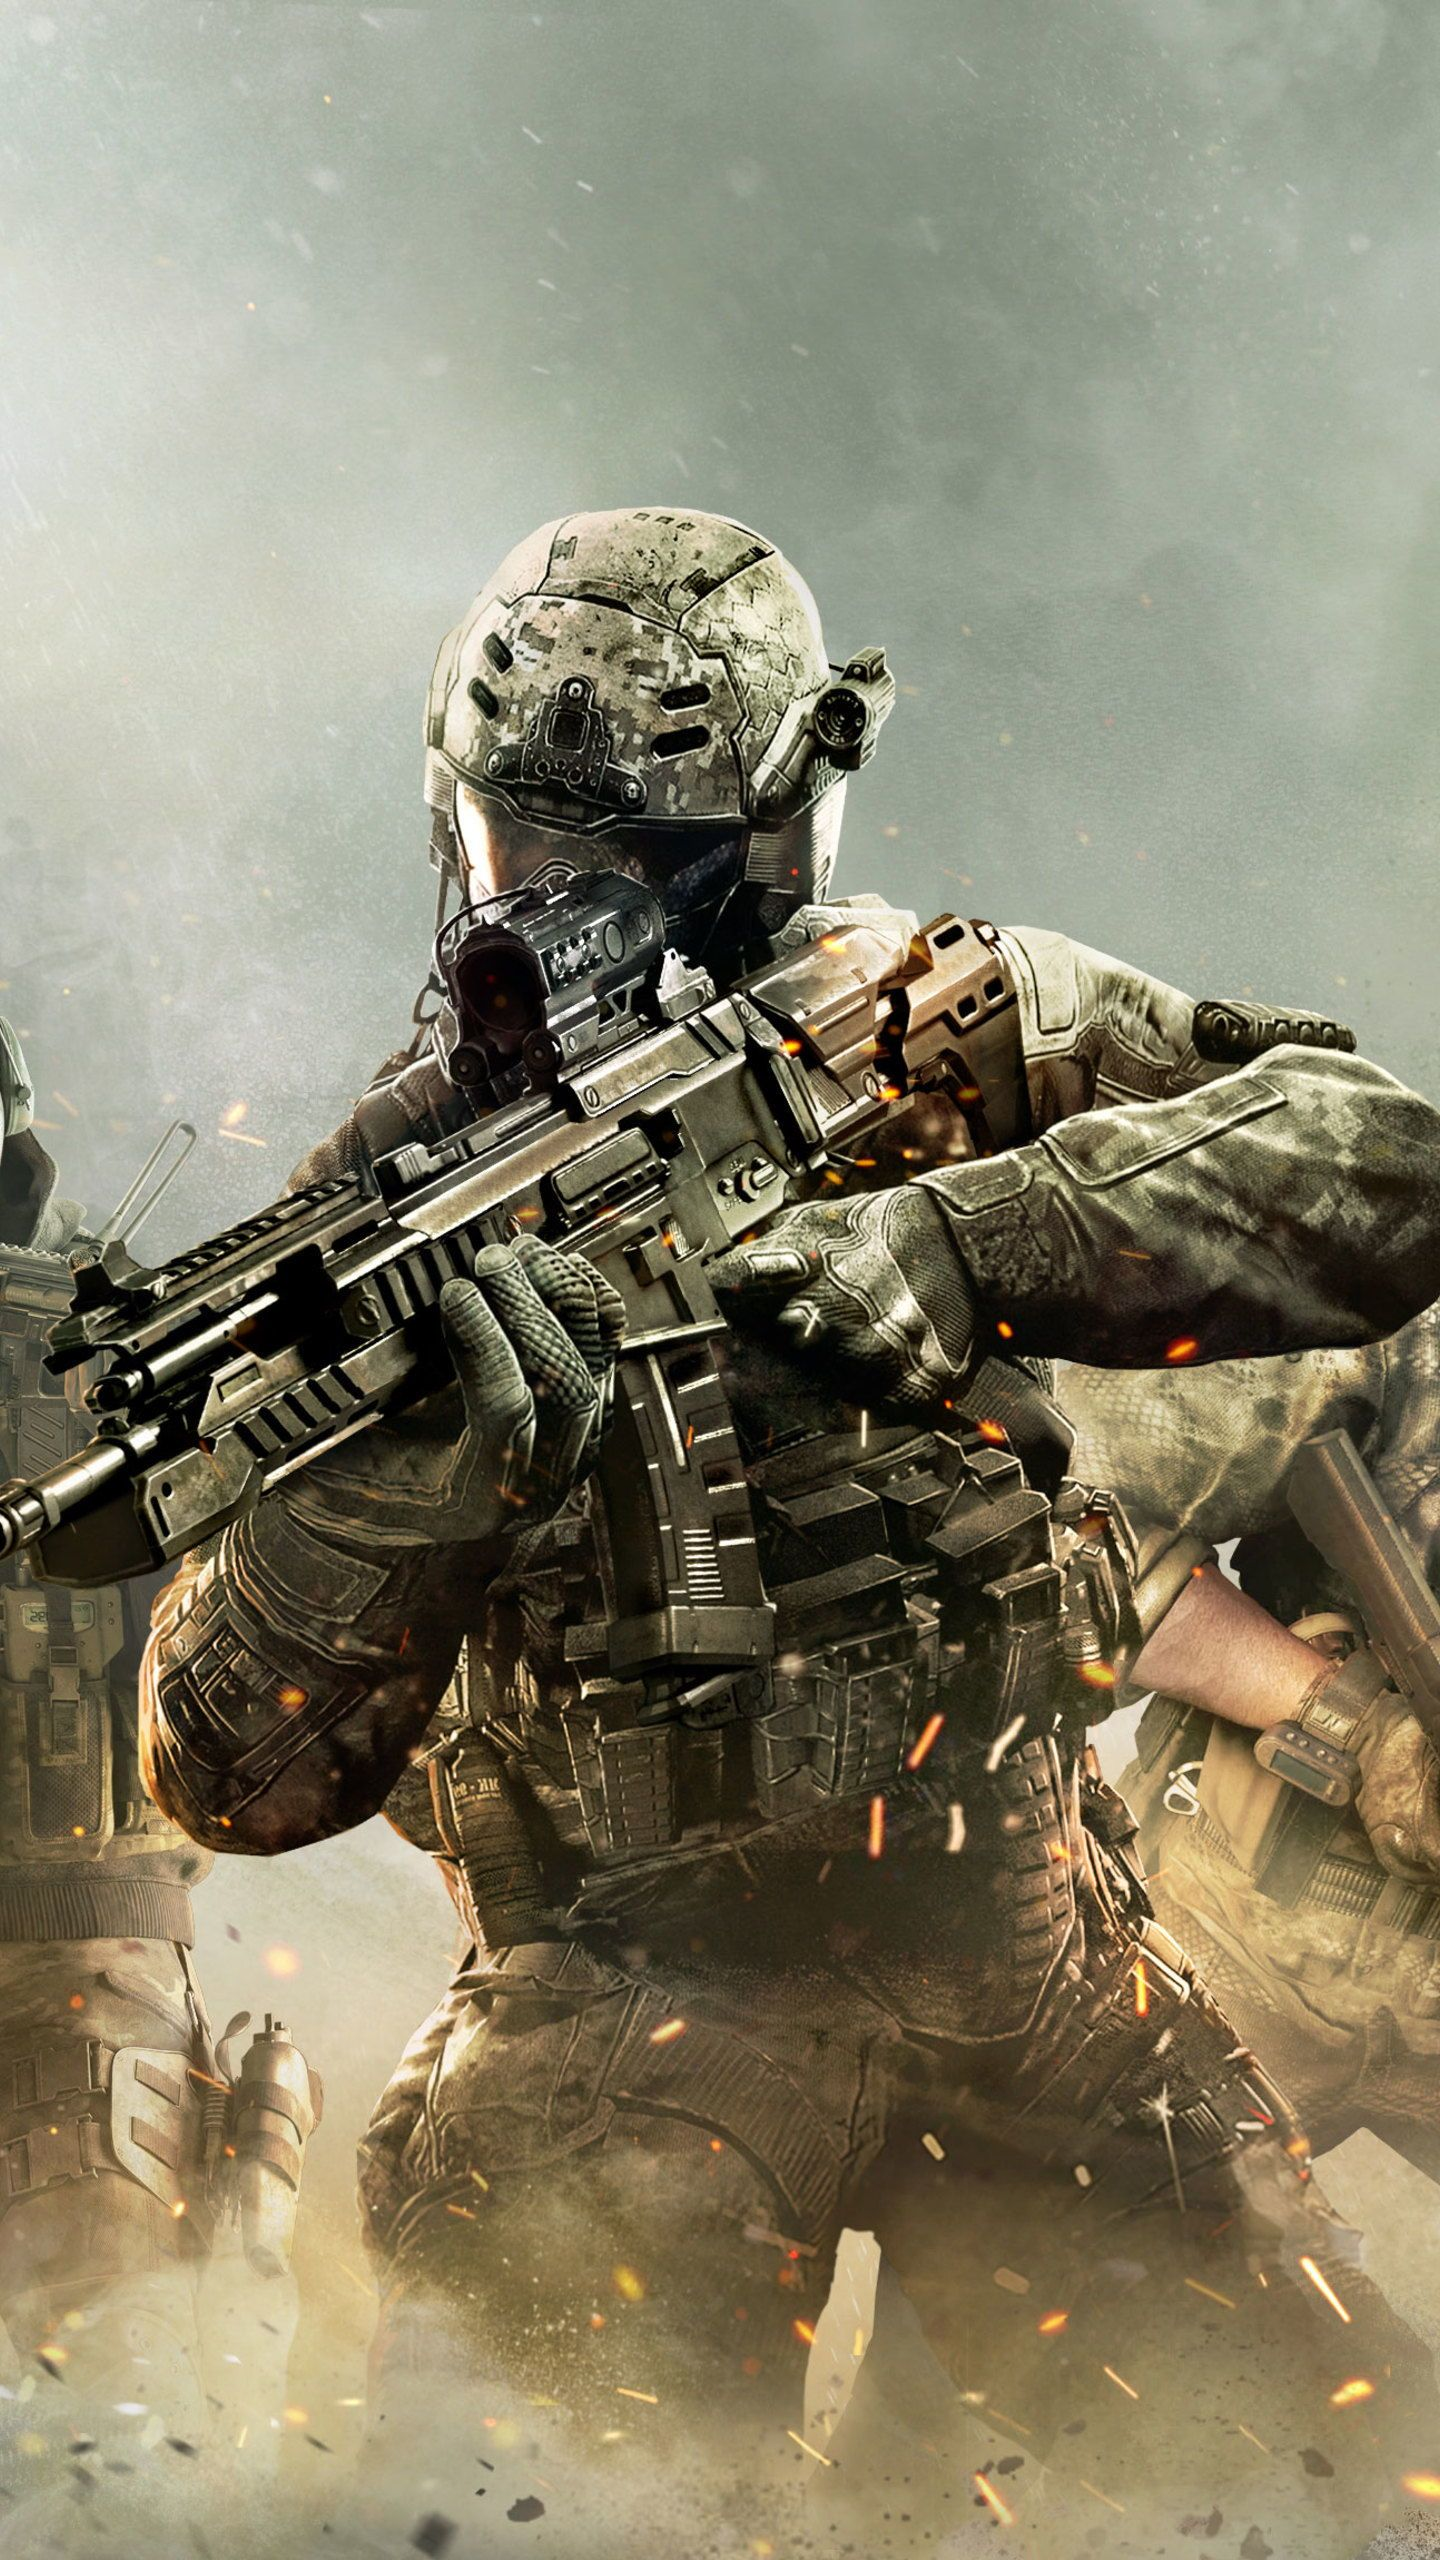 Download Hd Wallpapers Indian Army Wallpapers Army Wallpaper Call Of Duty